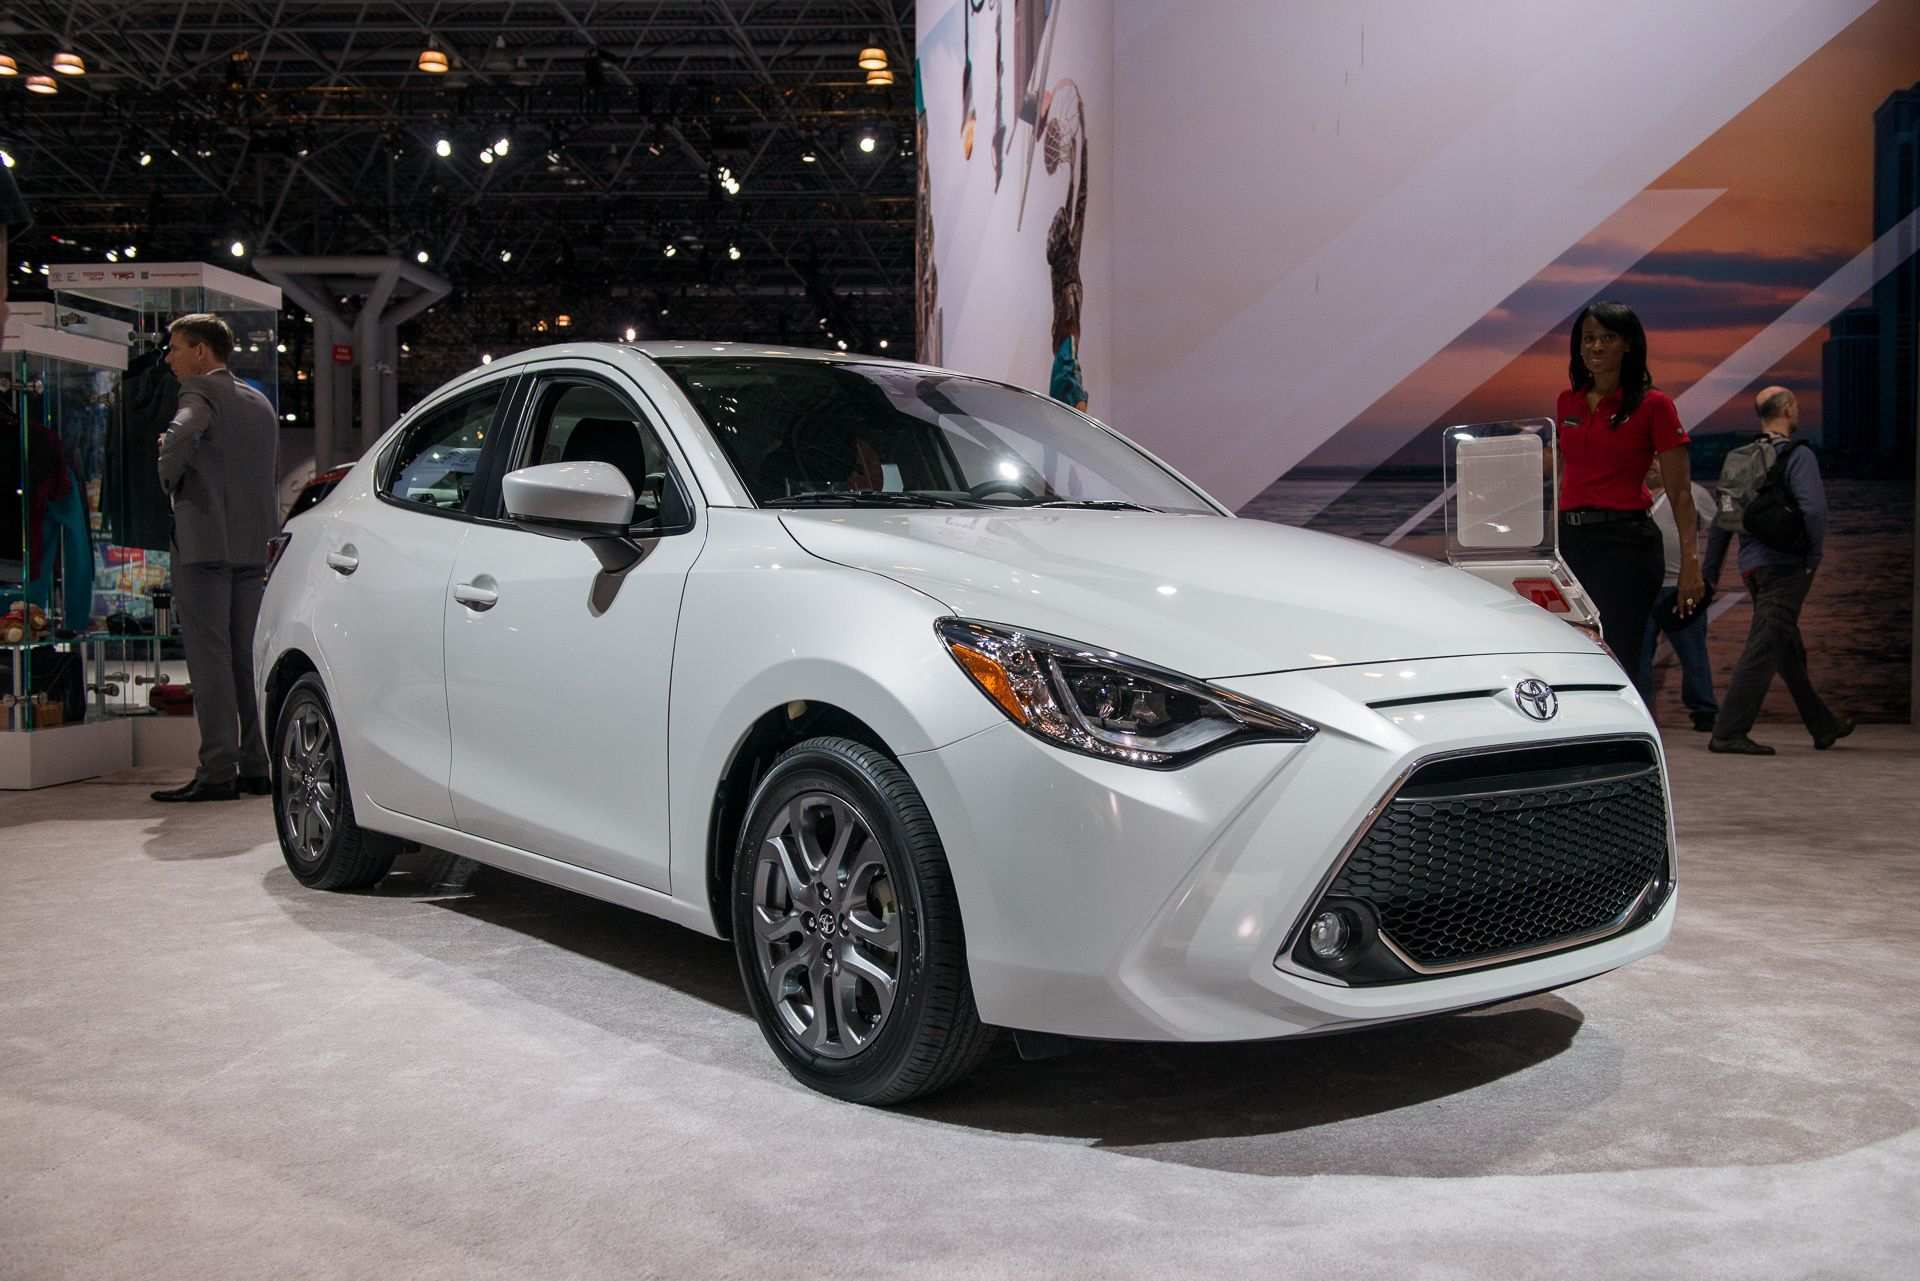 50 Best Review 2020 Toyota Yaris Ia Prices with 2020 Toyota Yaris Ia